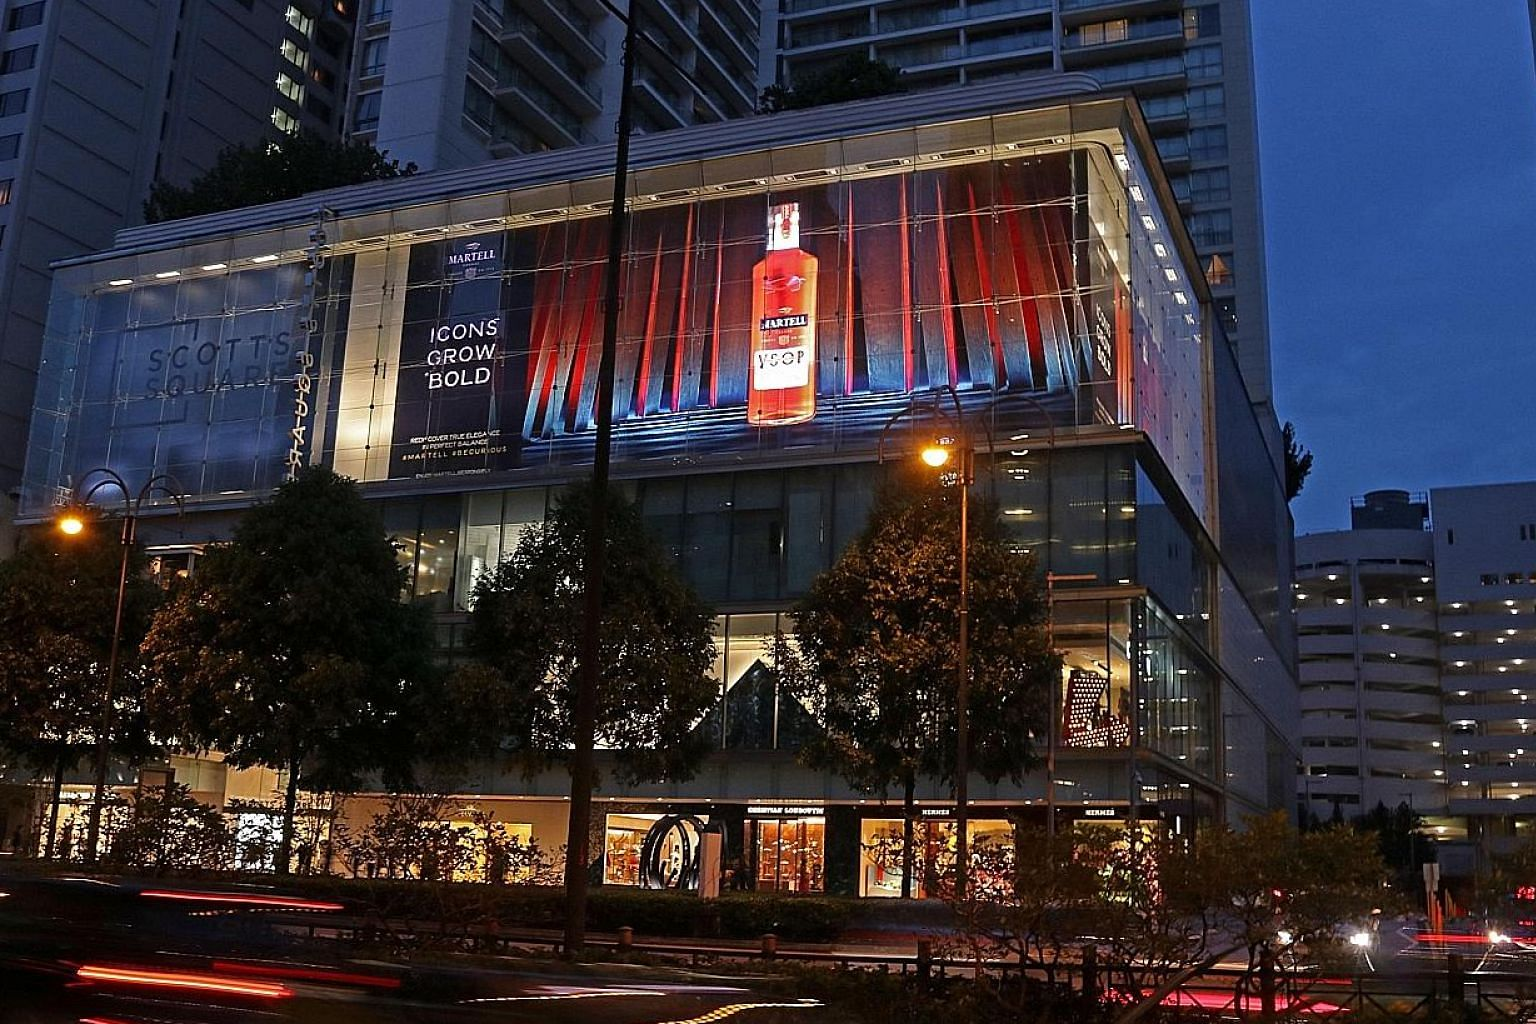 SPH says it is the first time that an installation of such a scale has been launched in Singapore. The ad, measuring 50m by 11m, will light up every night at 7pm till next month.